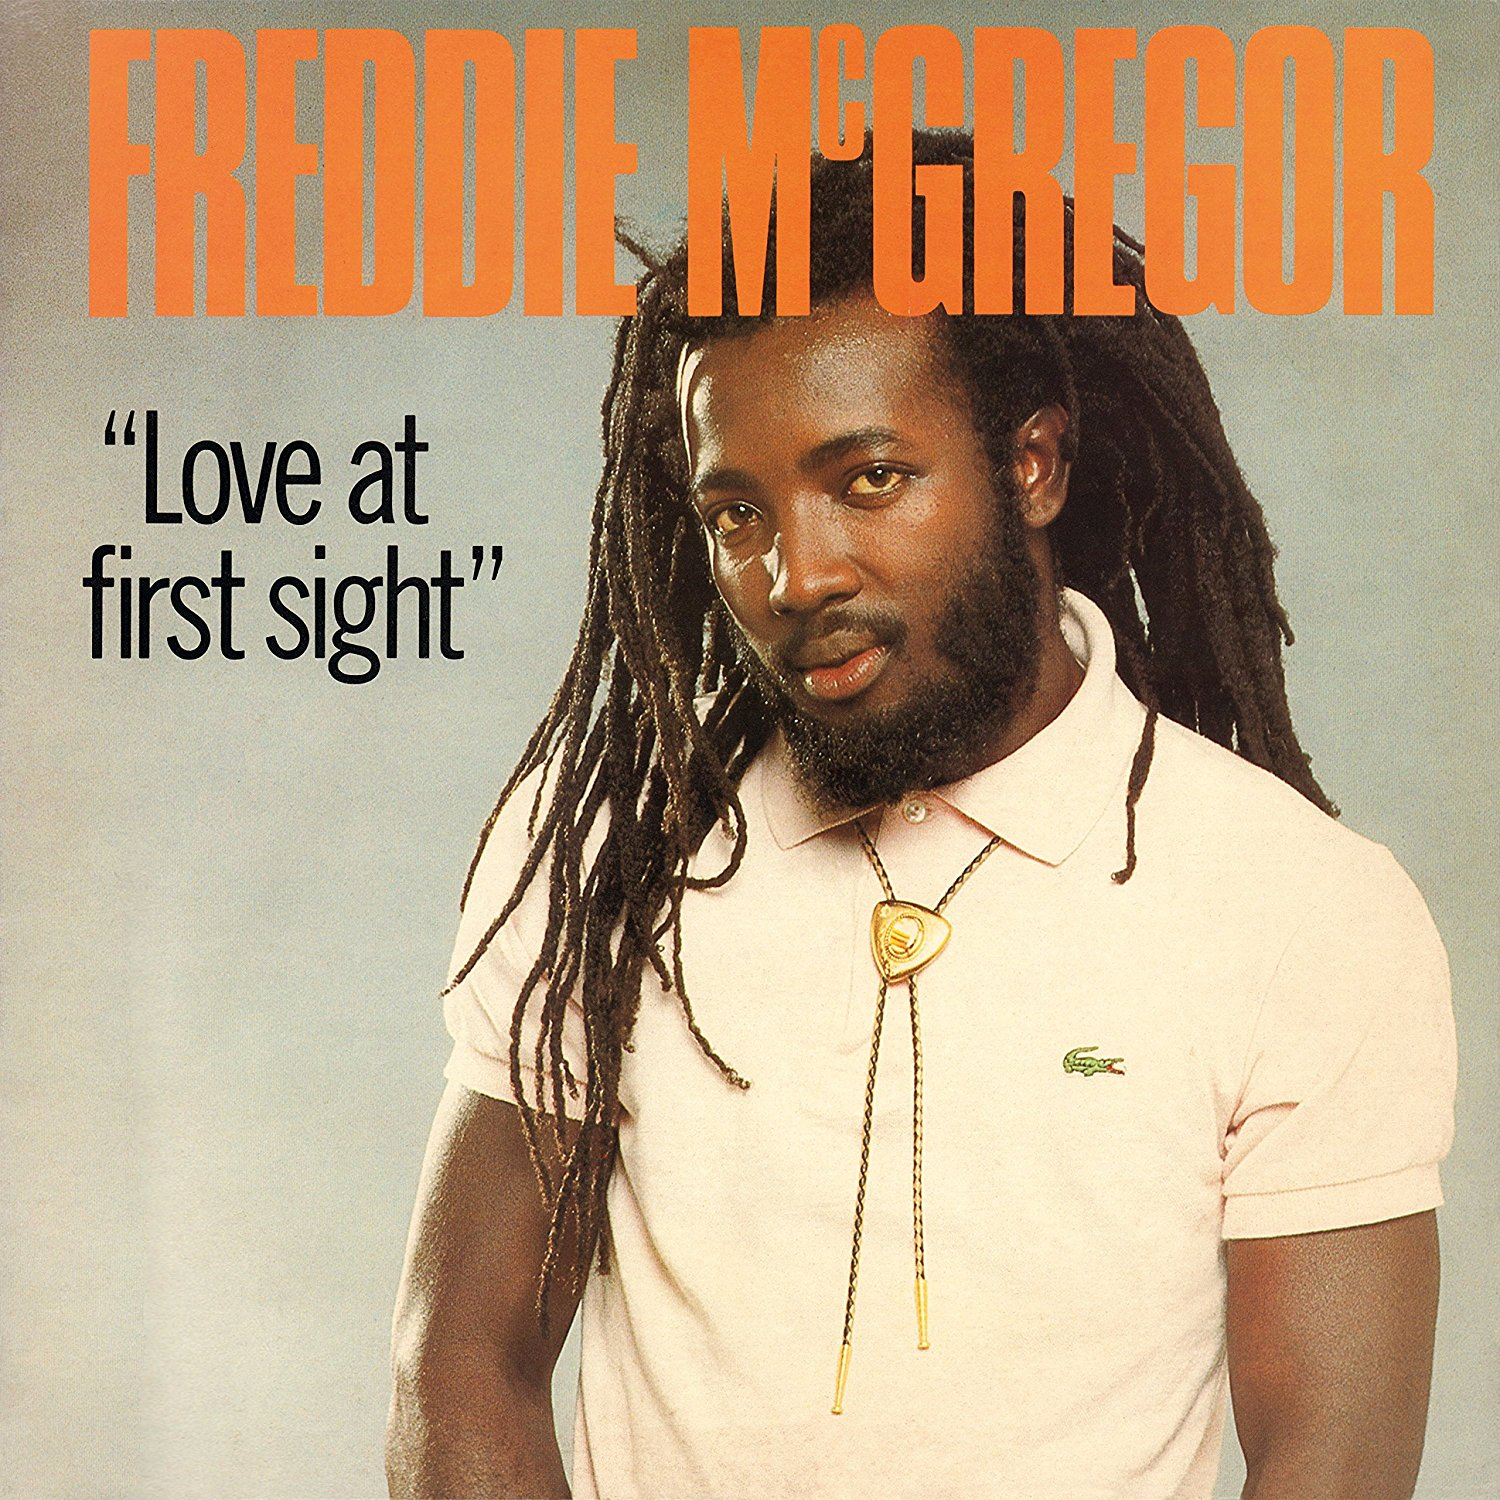 Freddie Mcgregor - Love At First Sight (Can)